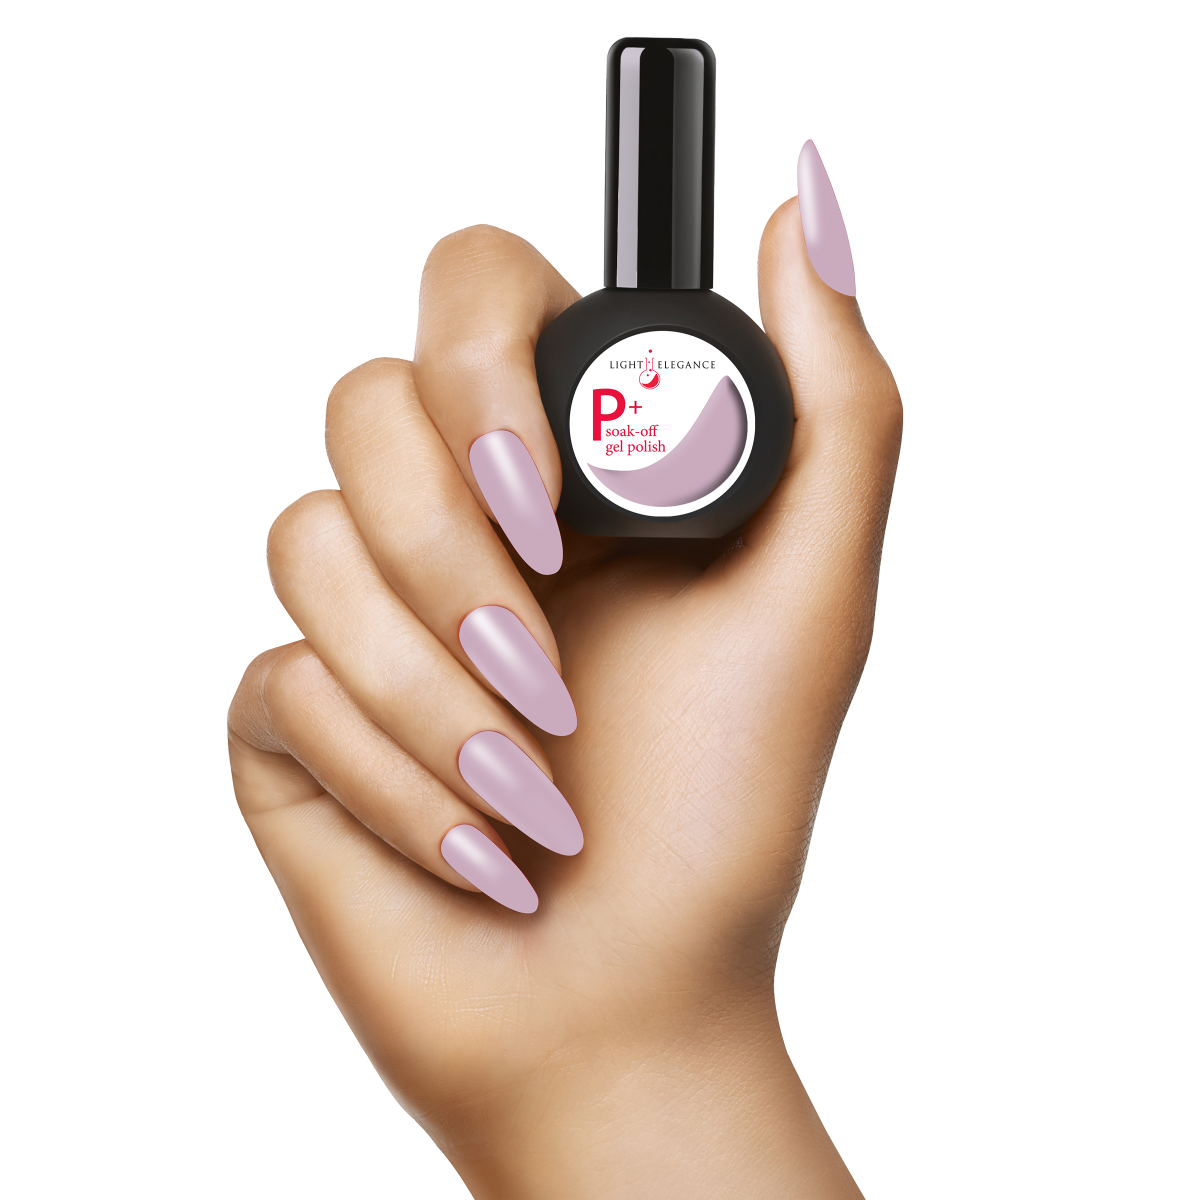 NEW P+ Thank You Note Gel Polish